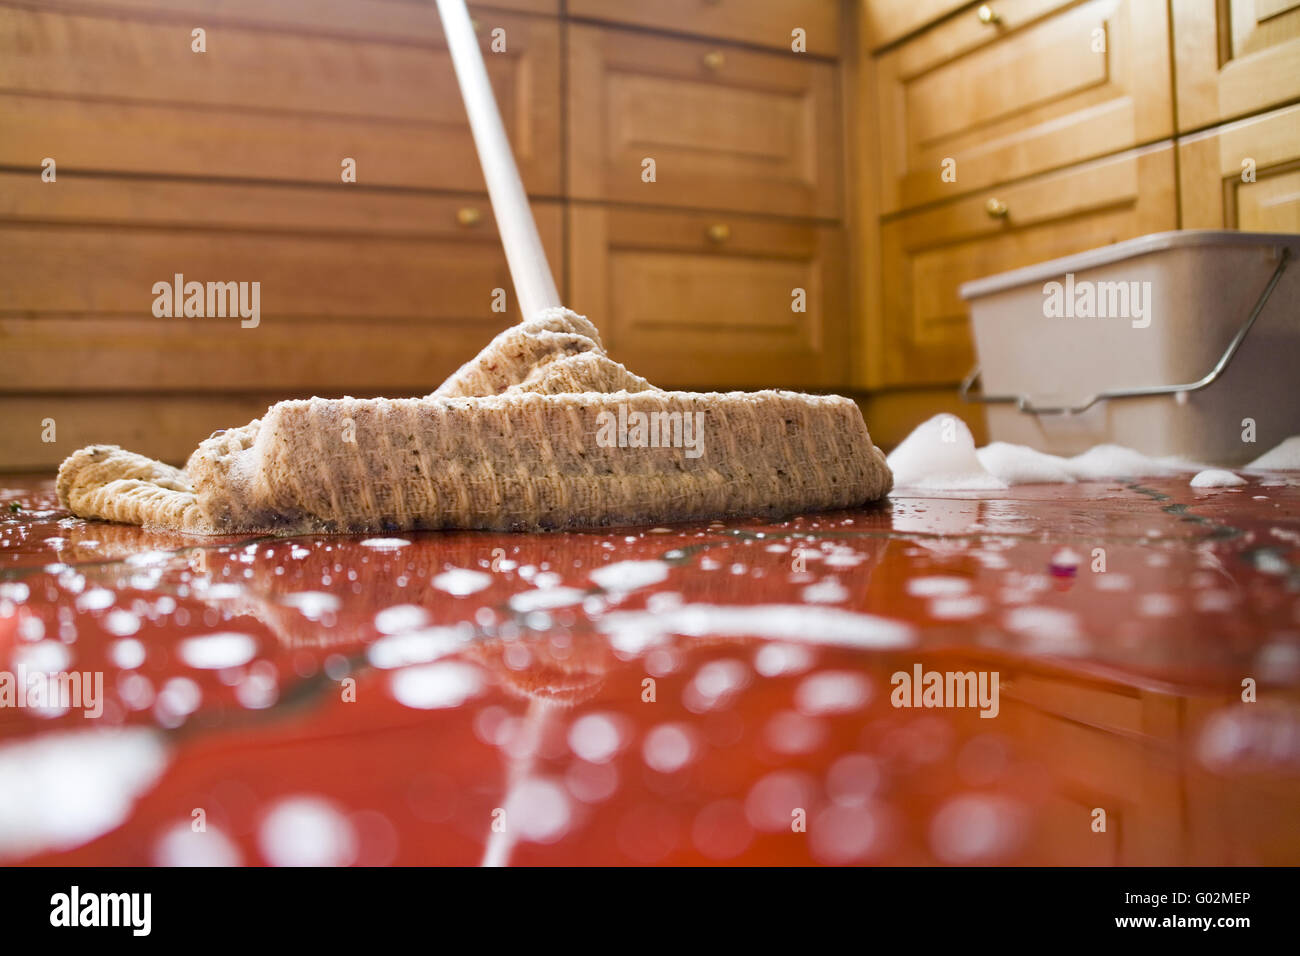 Floor cleaning - Stock Image